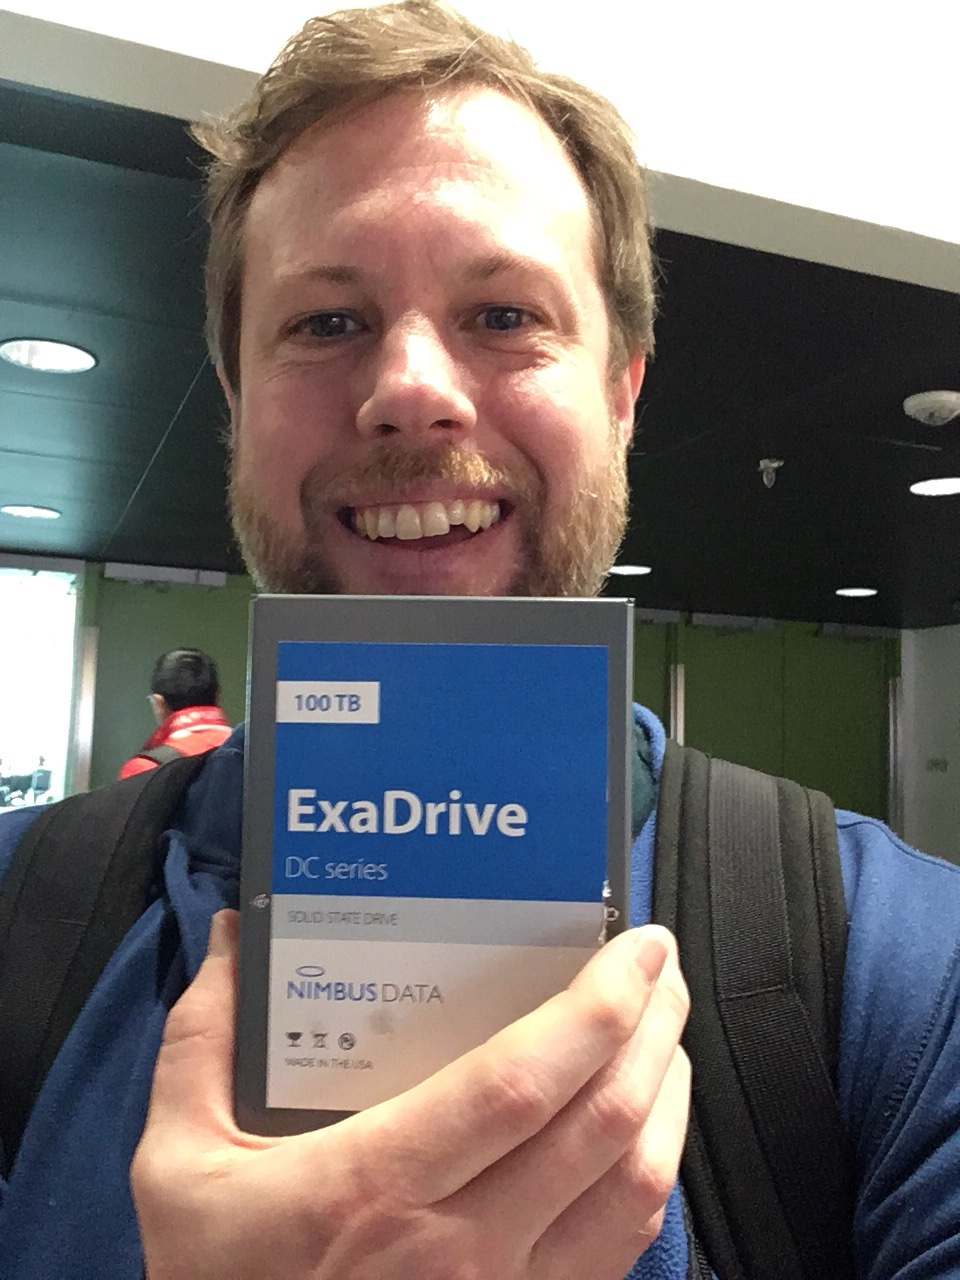 World's Largest SSD — Nimbus Data ExaDrive DC100 100TB